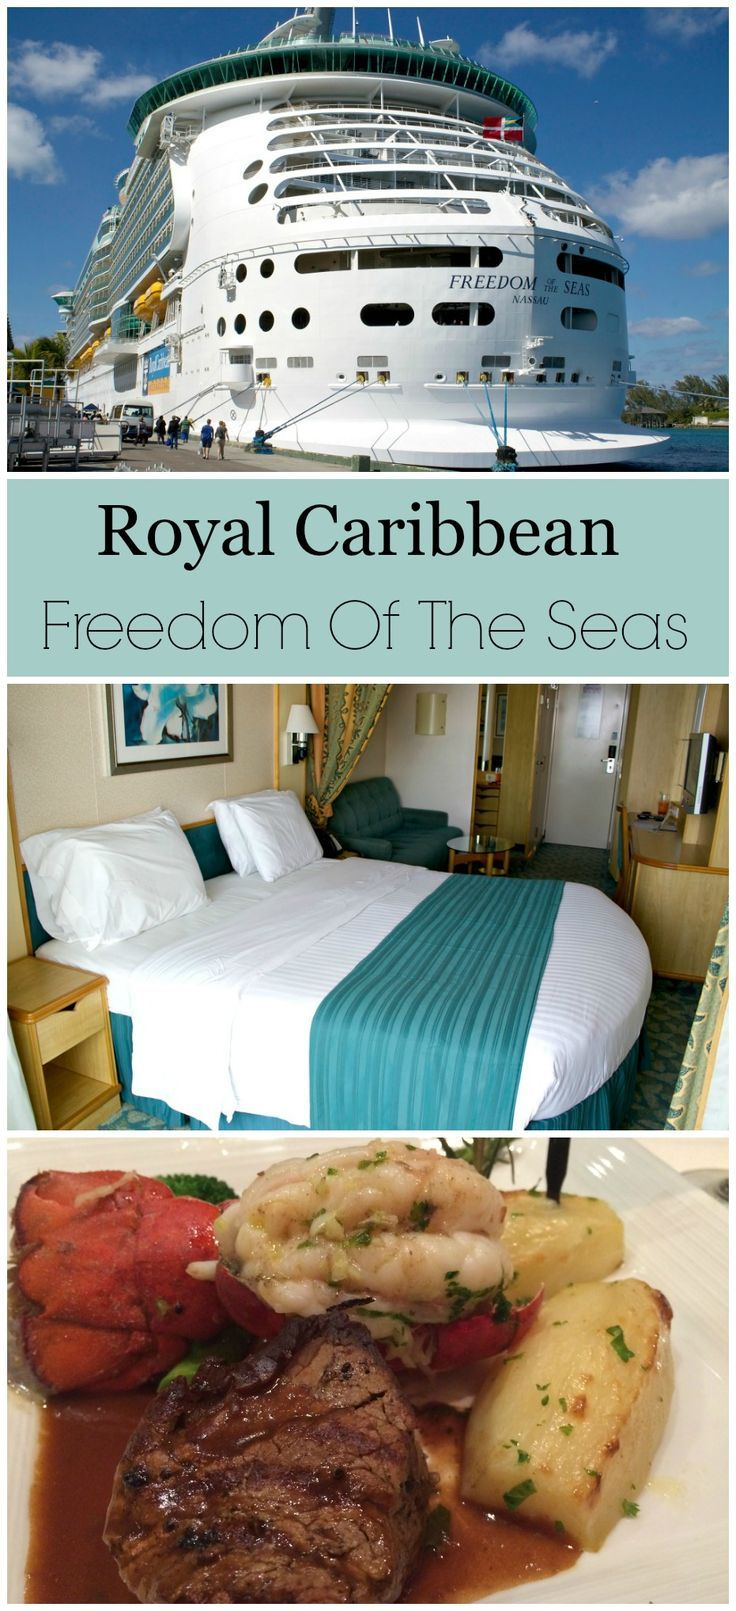 Royal caribbean diamond jubilee party a success cruise international - Freedom Of The Seas Ship Royal Caribbean Review